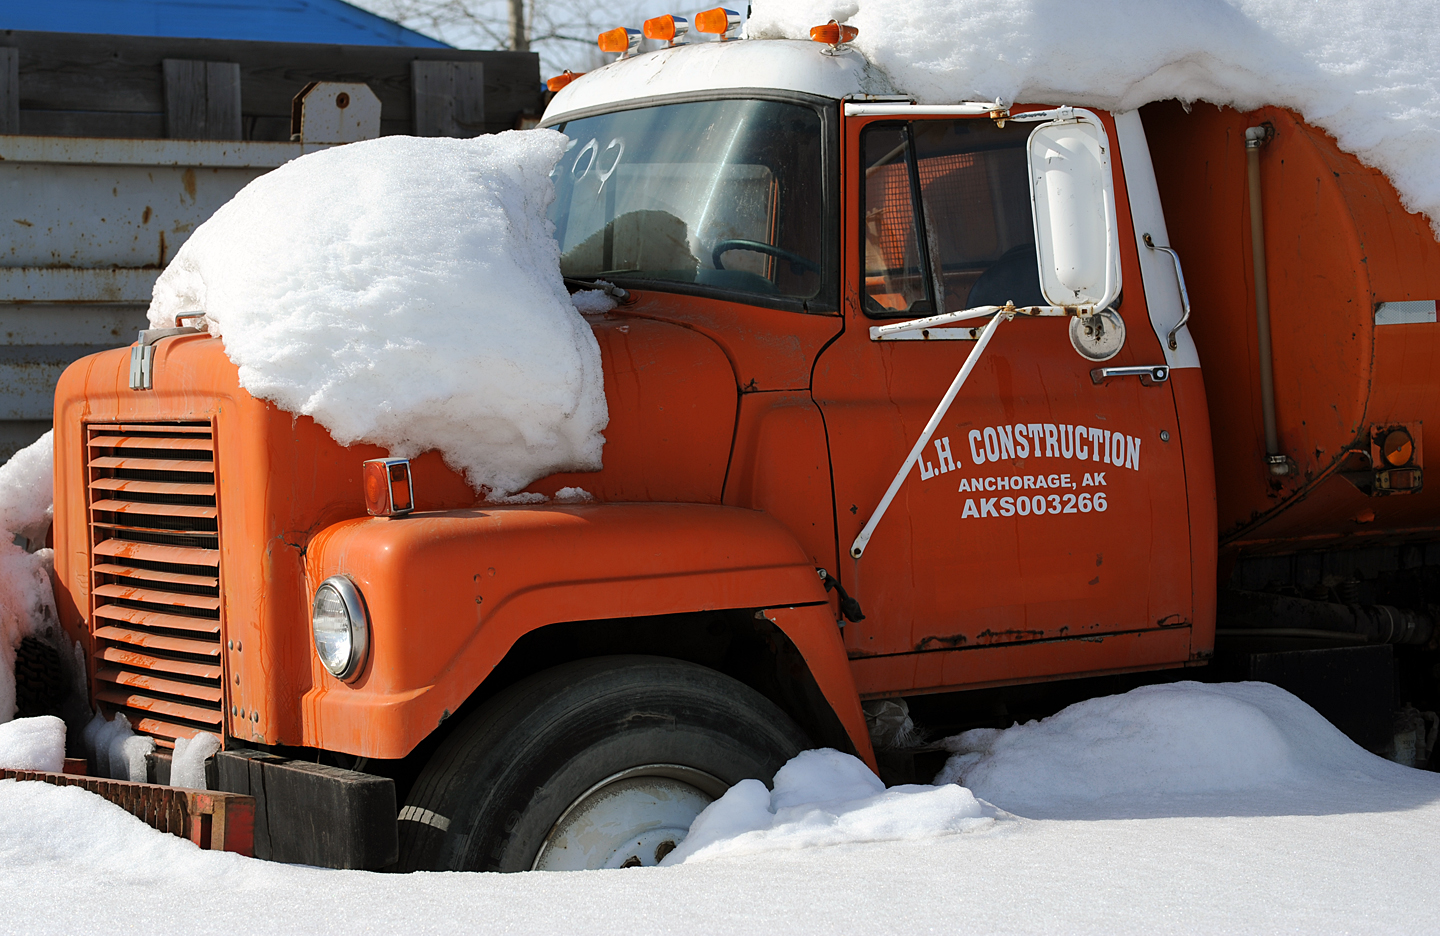 Orange Truck And Snow by bensonga in bensonga